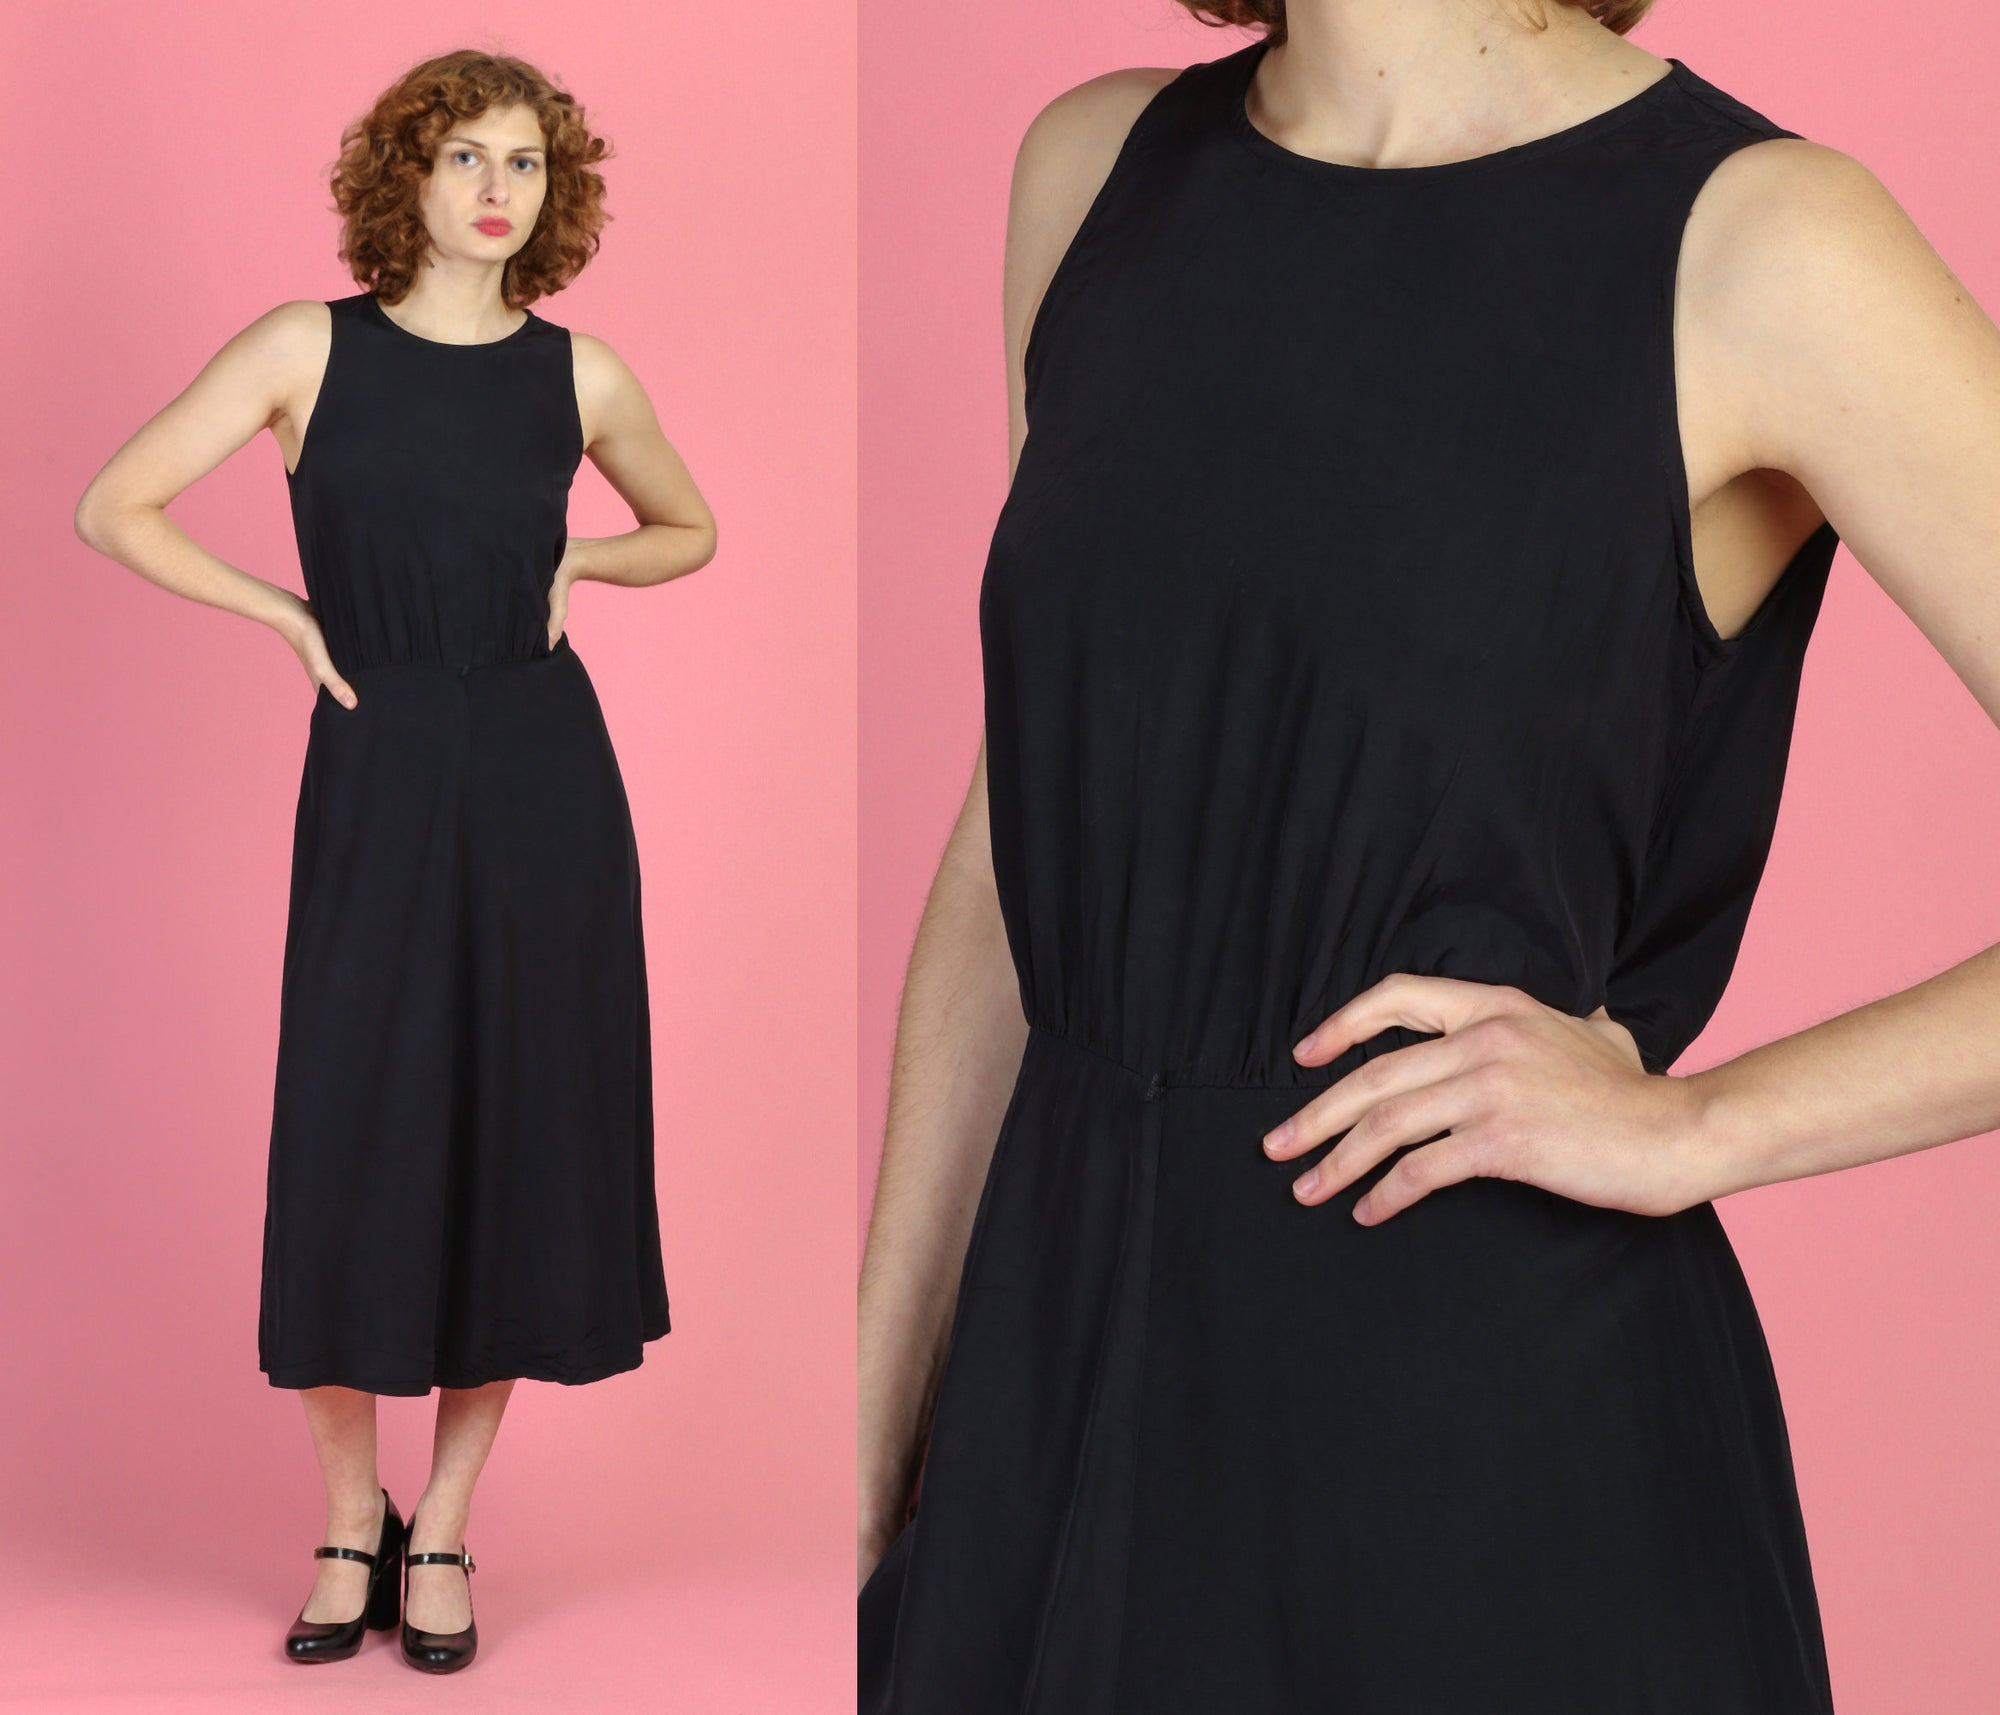 Vintage Paris Sport Club Minimalist Black Midi Dress - Medium